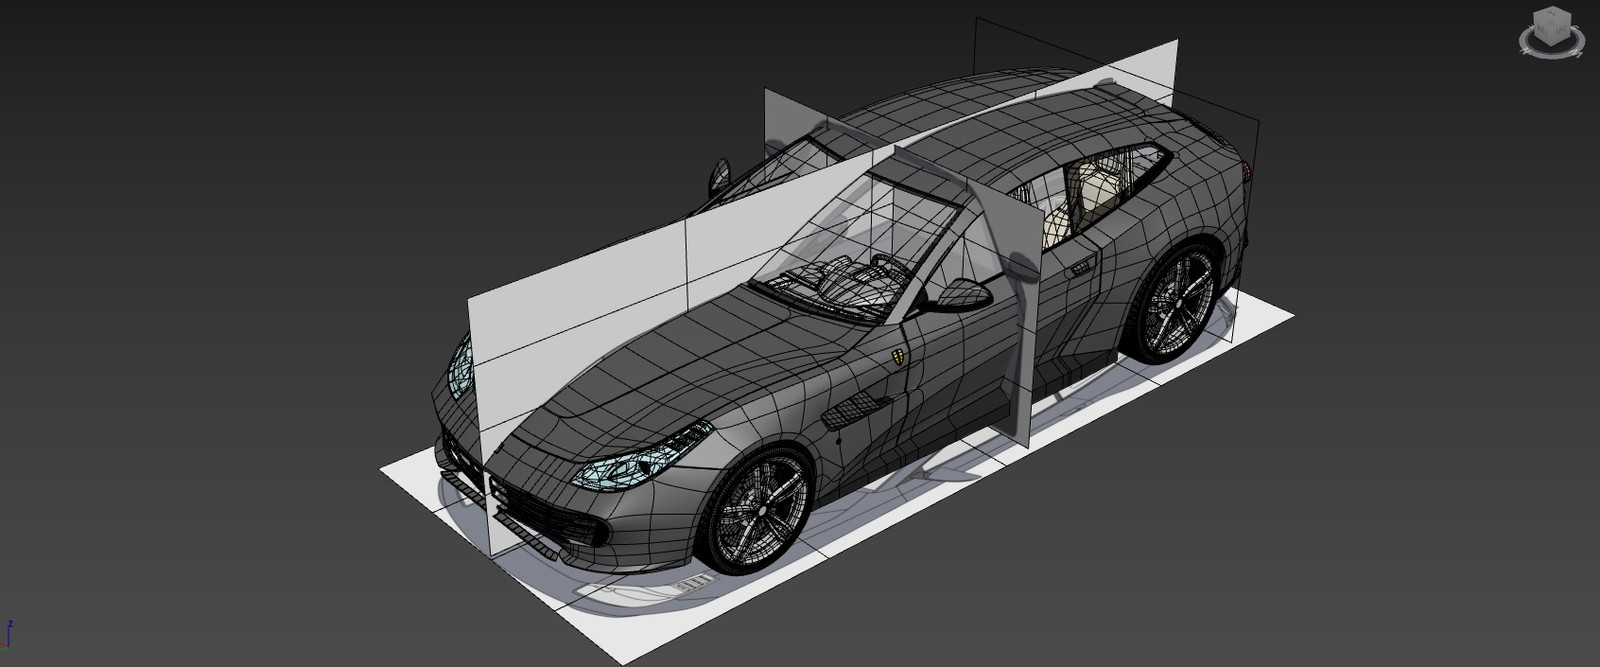 Ferrari GTC4Lusso - Modeling with blueprints